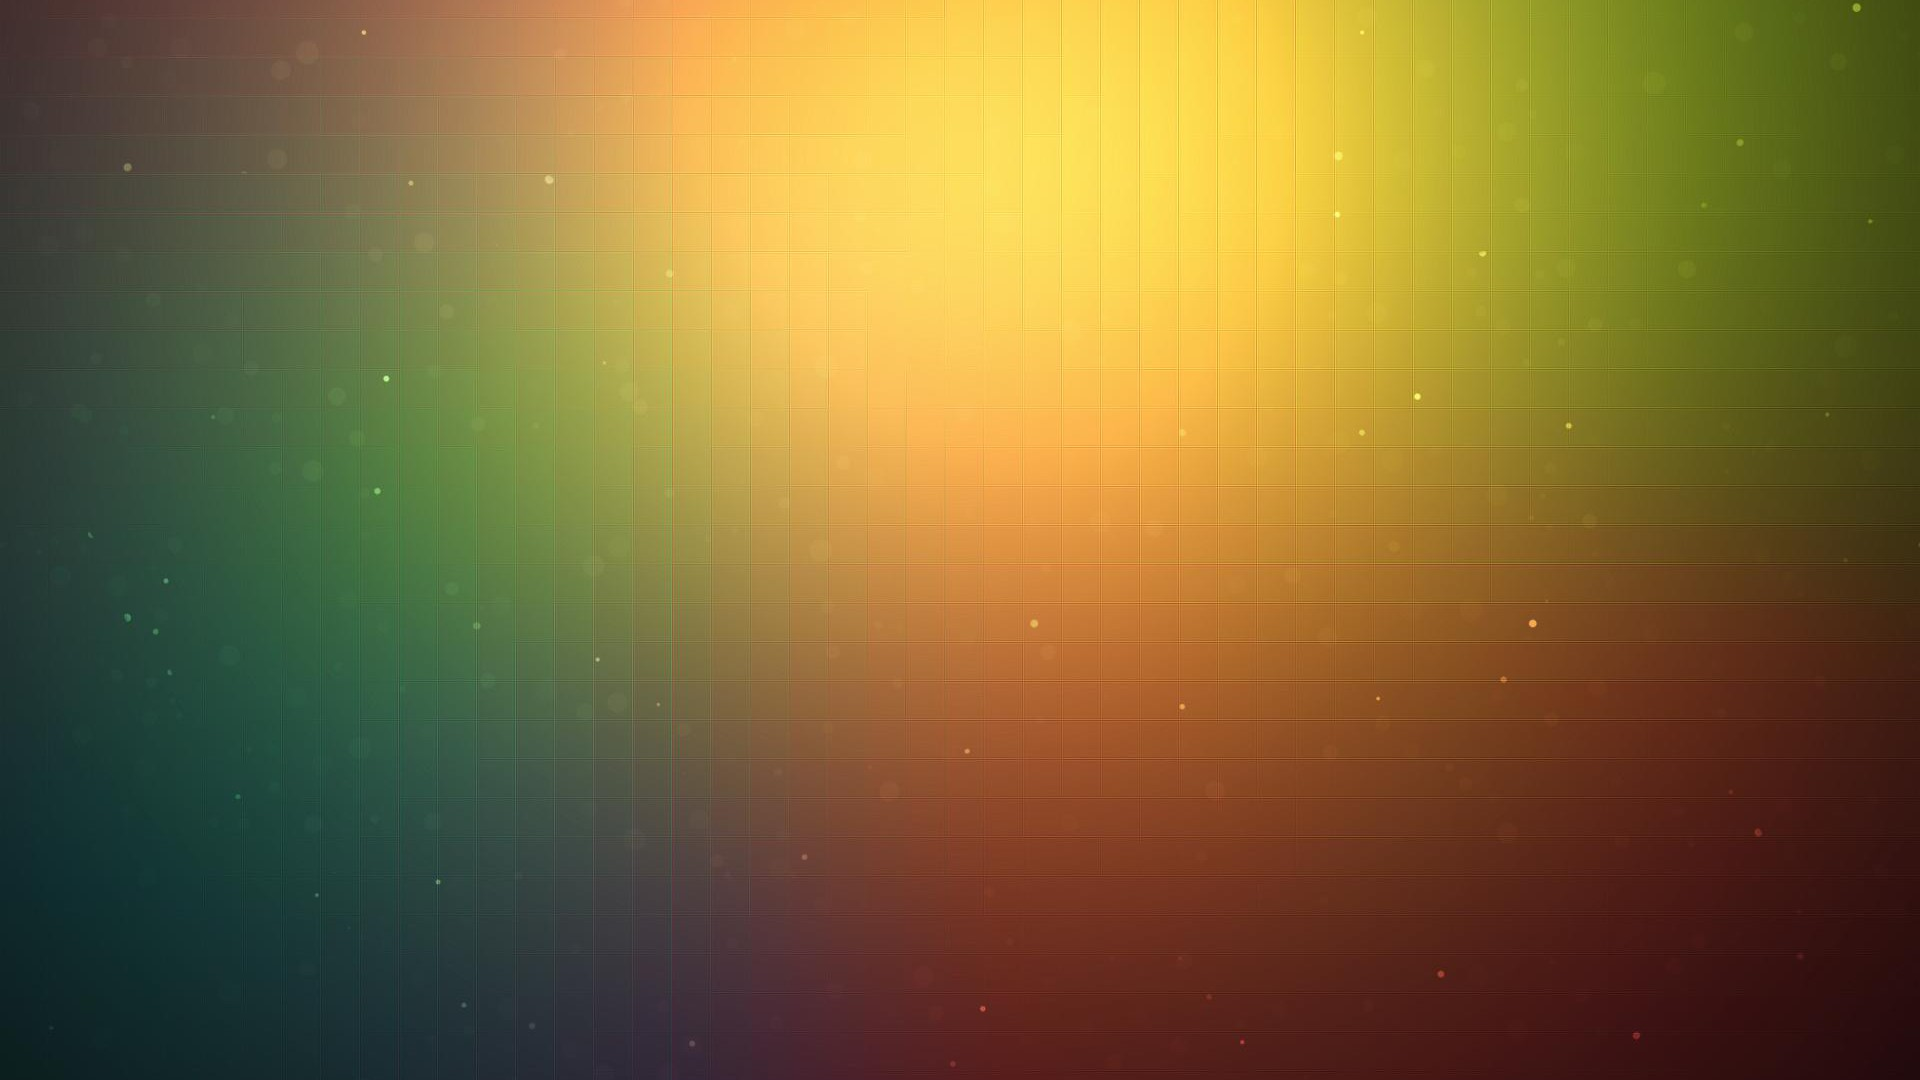 Wallpaper simple